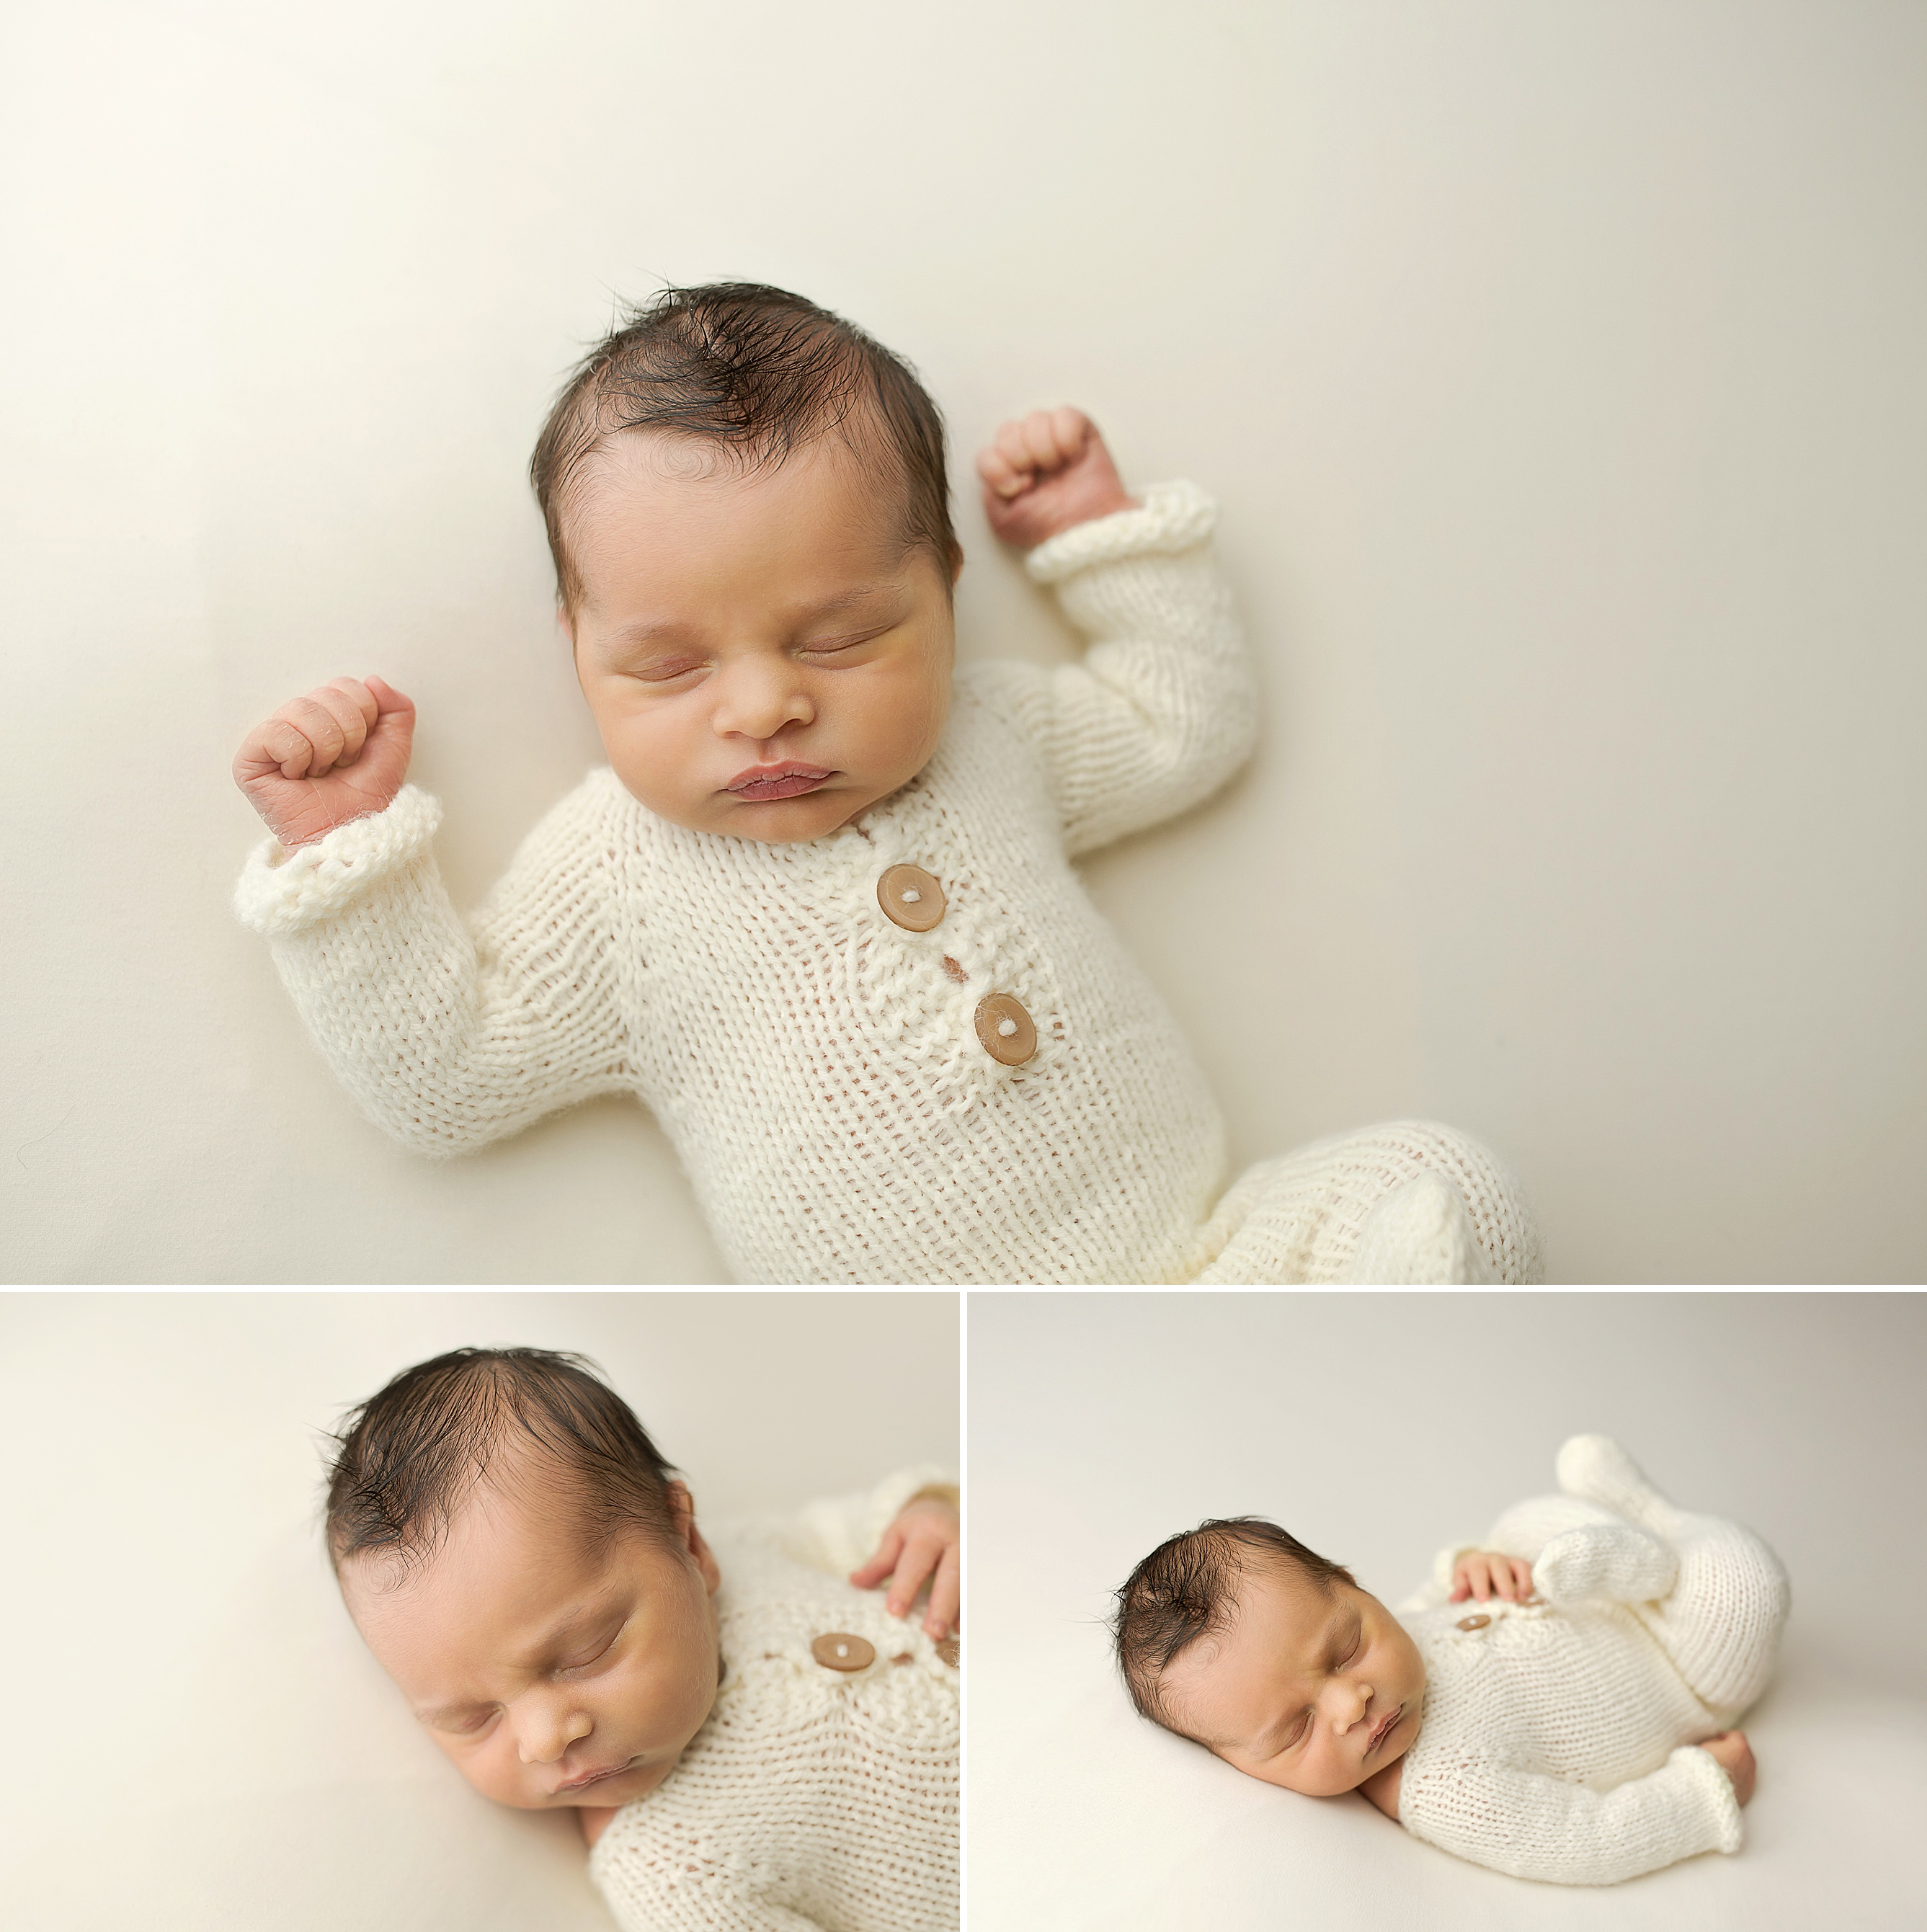 Metamora IL Newborn Photographer | Chandi Kesler_0124.jpg